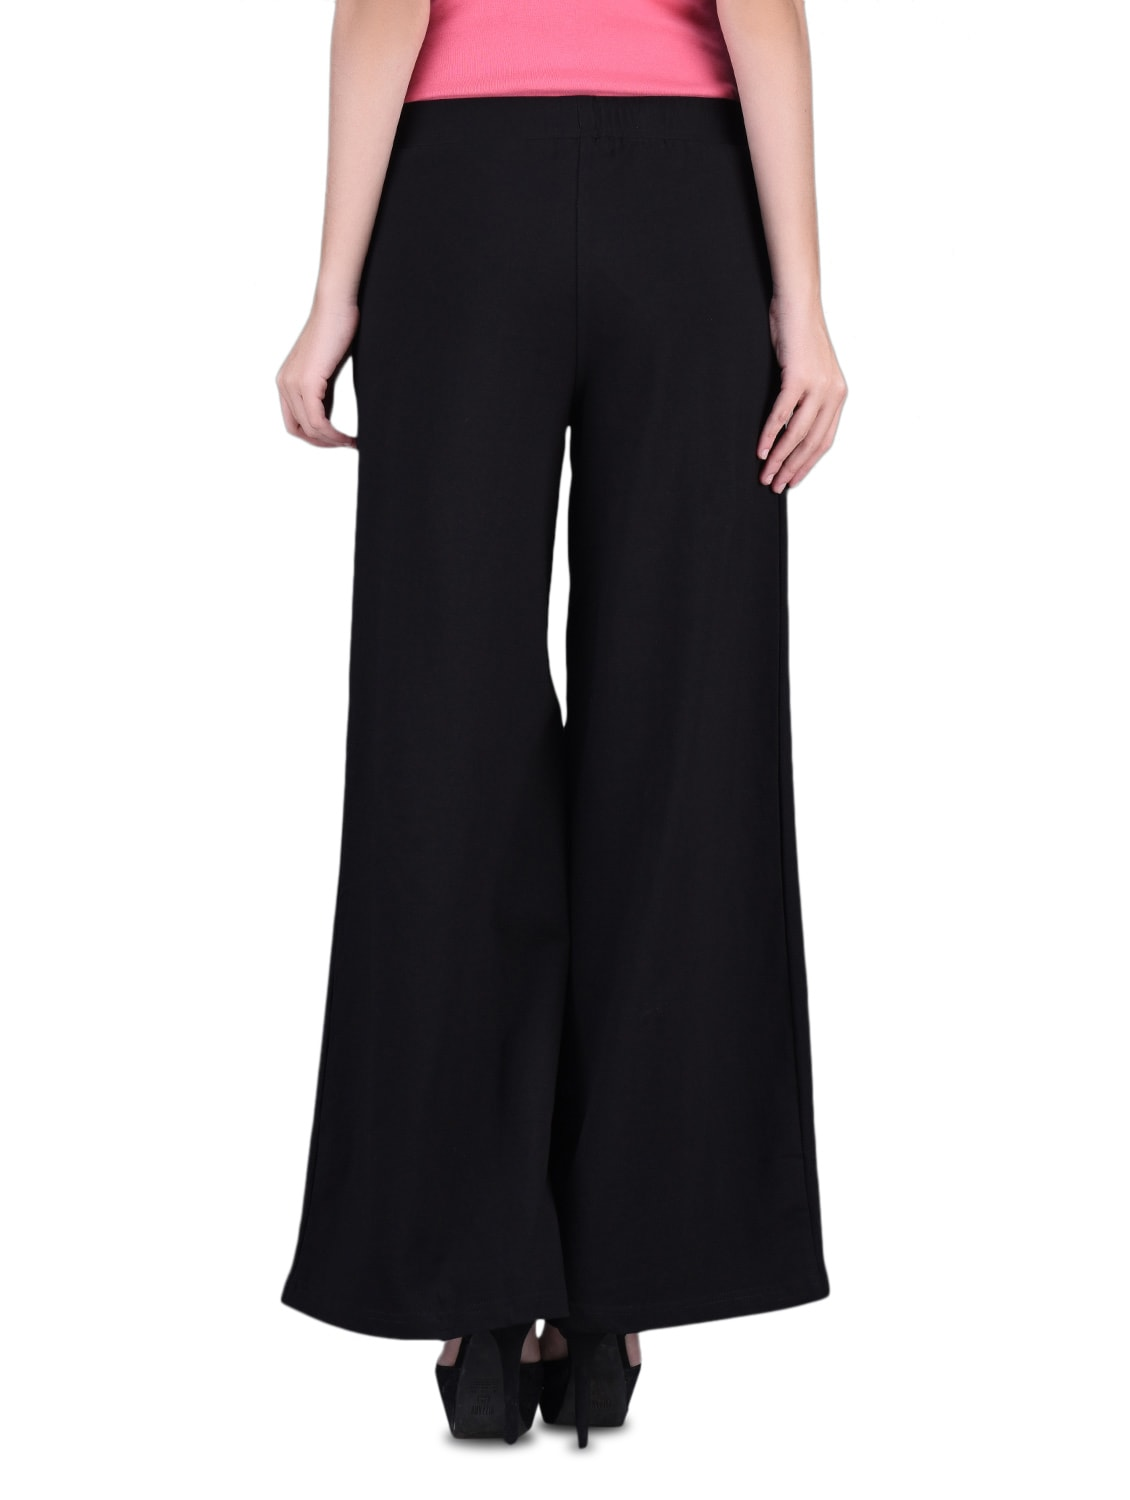 7f7a1be18db Buy Black Cotton Lycra Knit Palazzo Pants for Women from Finesse for ₹1293  at 12% off